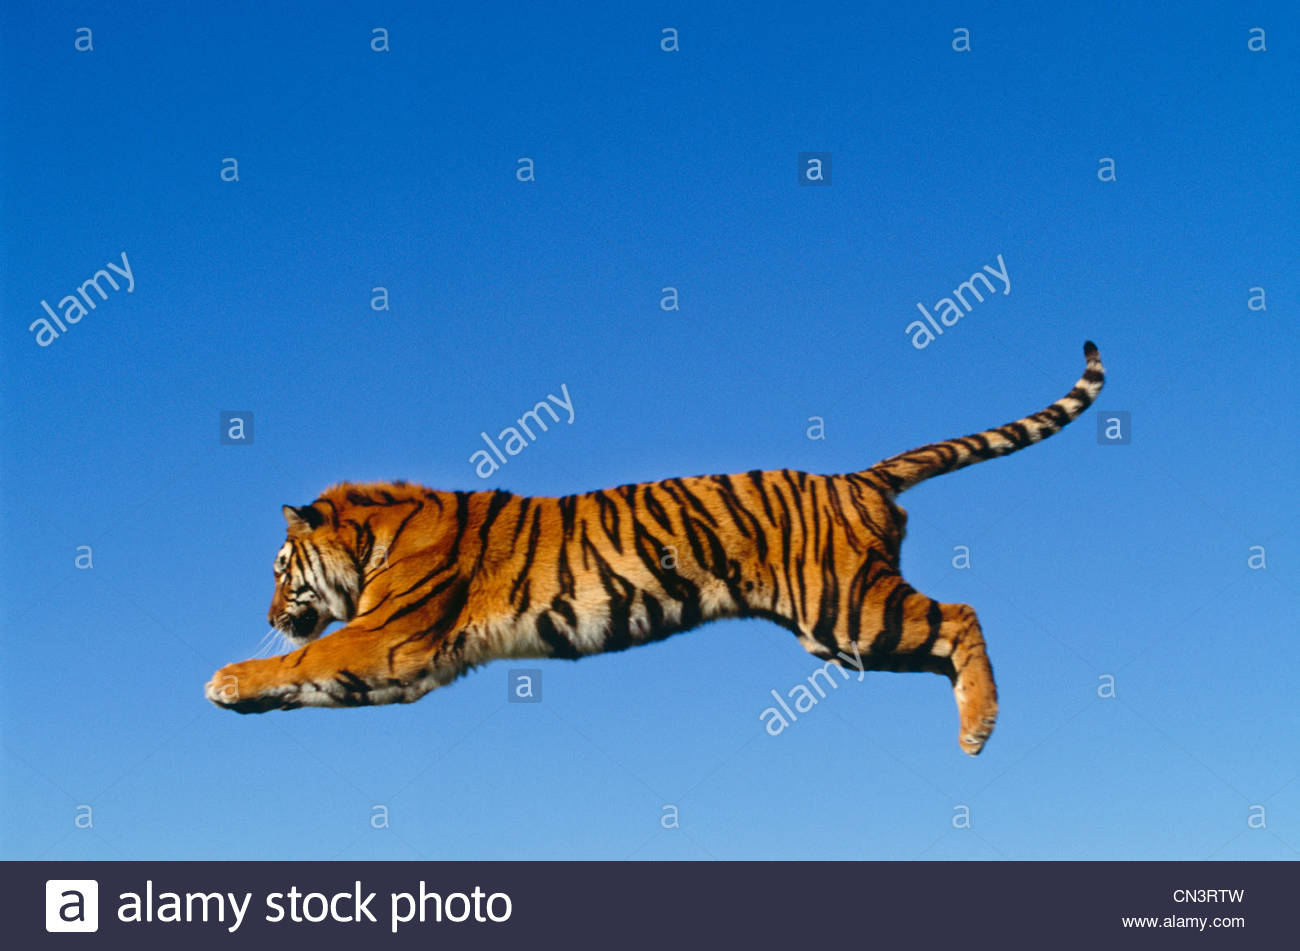 Leaping bengal tiger - Stock Image